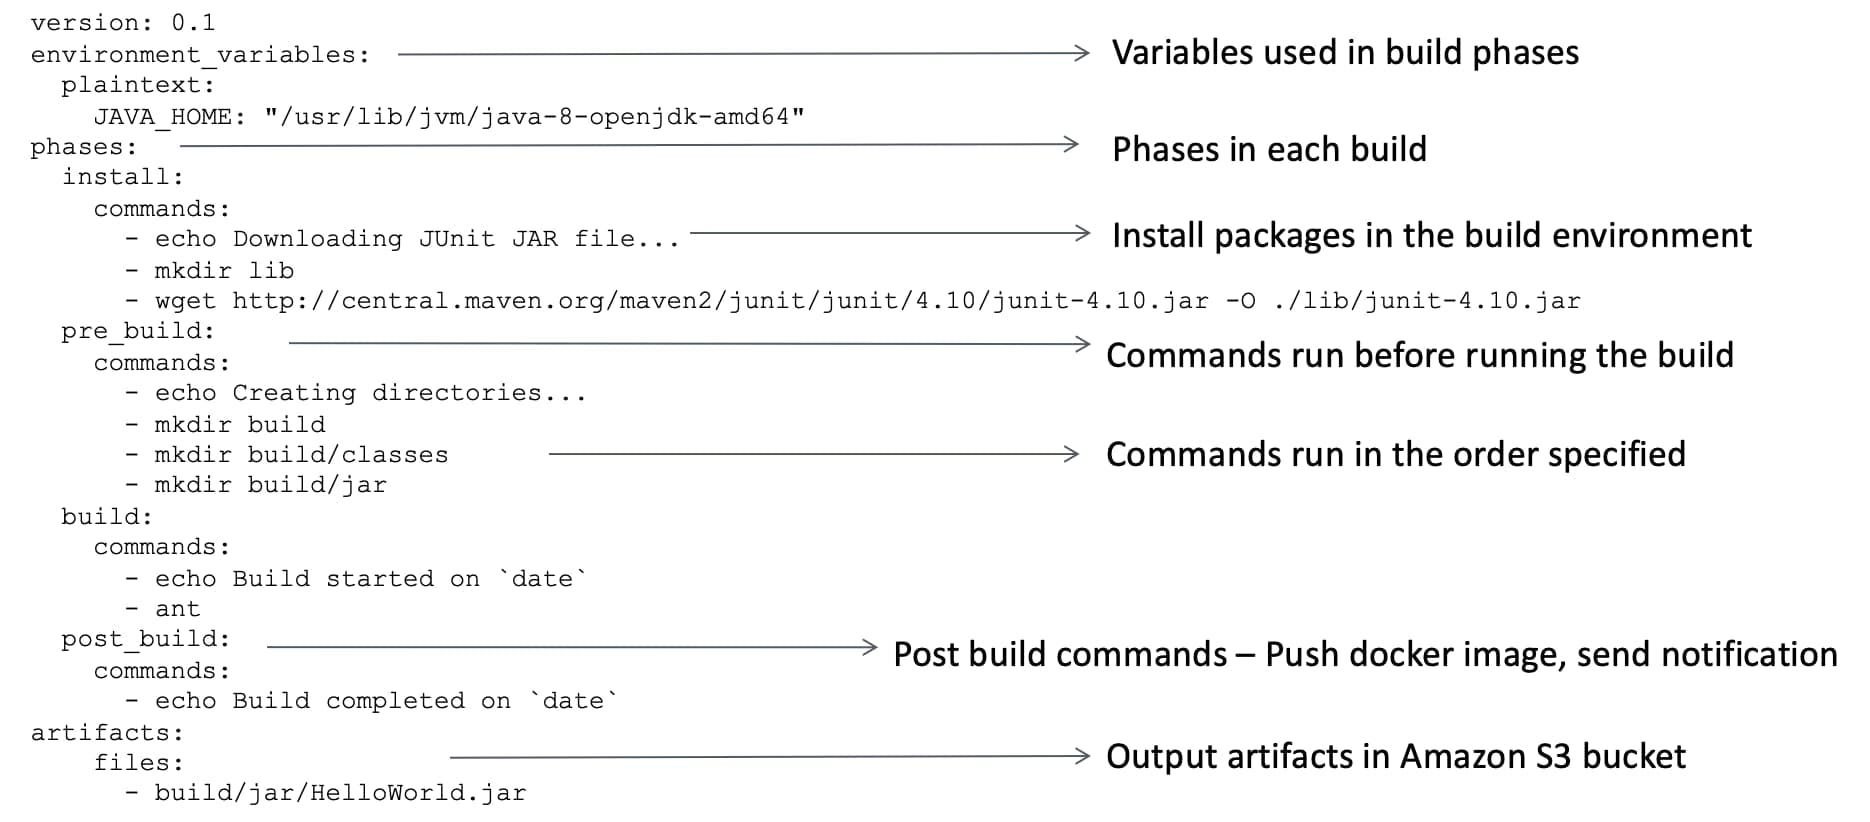 AWS CodeBuild buildspec.yml build steps with explanation